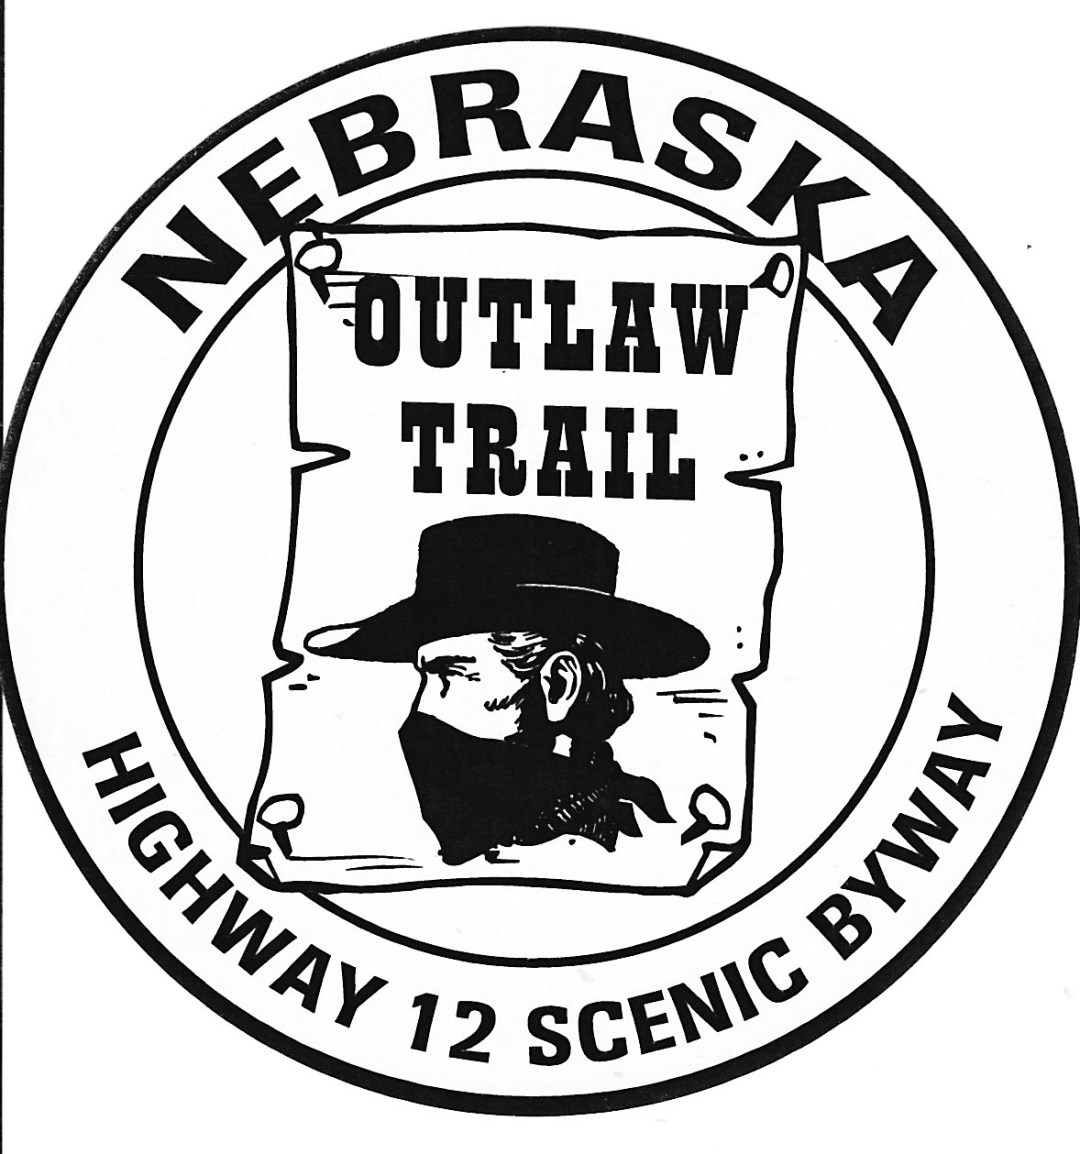 Outlaw Trail Scenic Byway